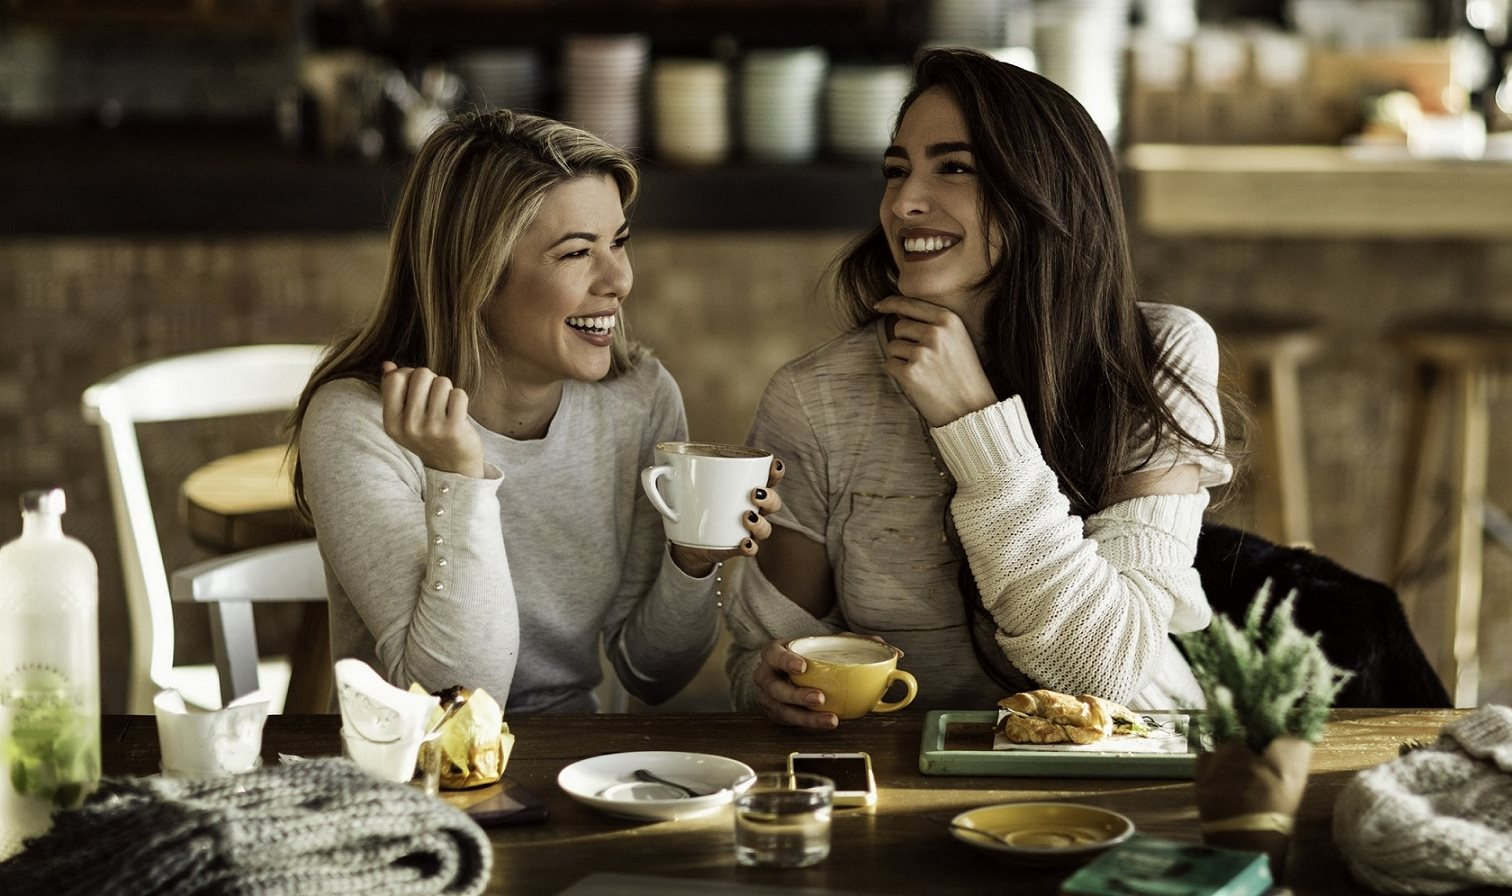 Coffee Shop with Two Smiling Women